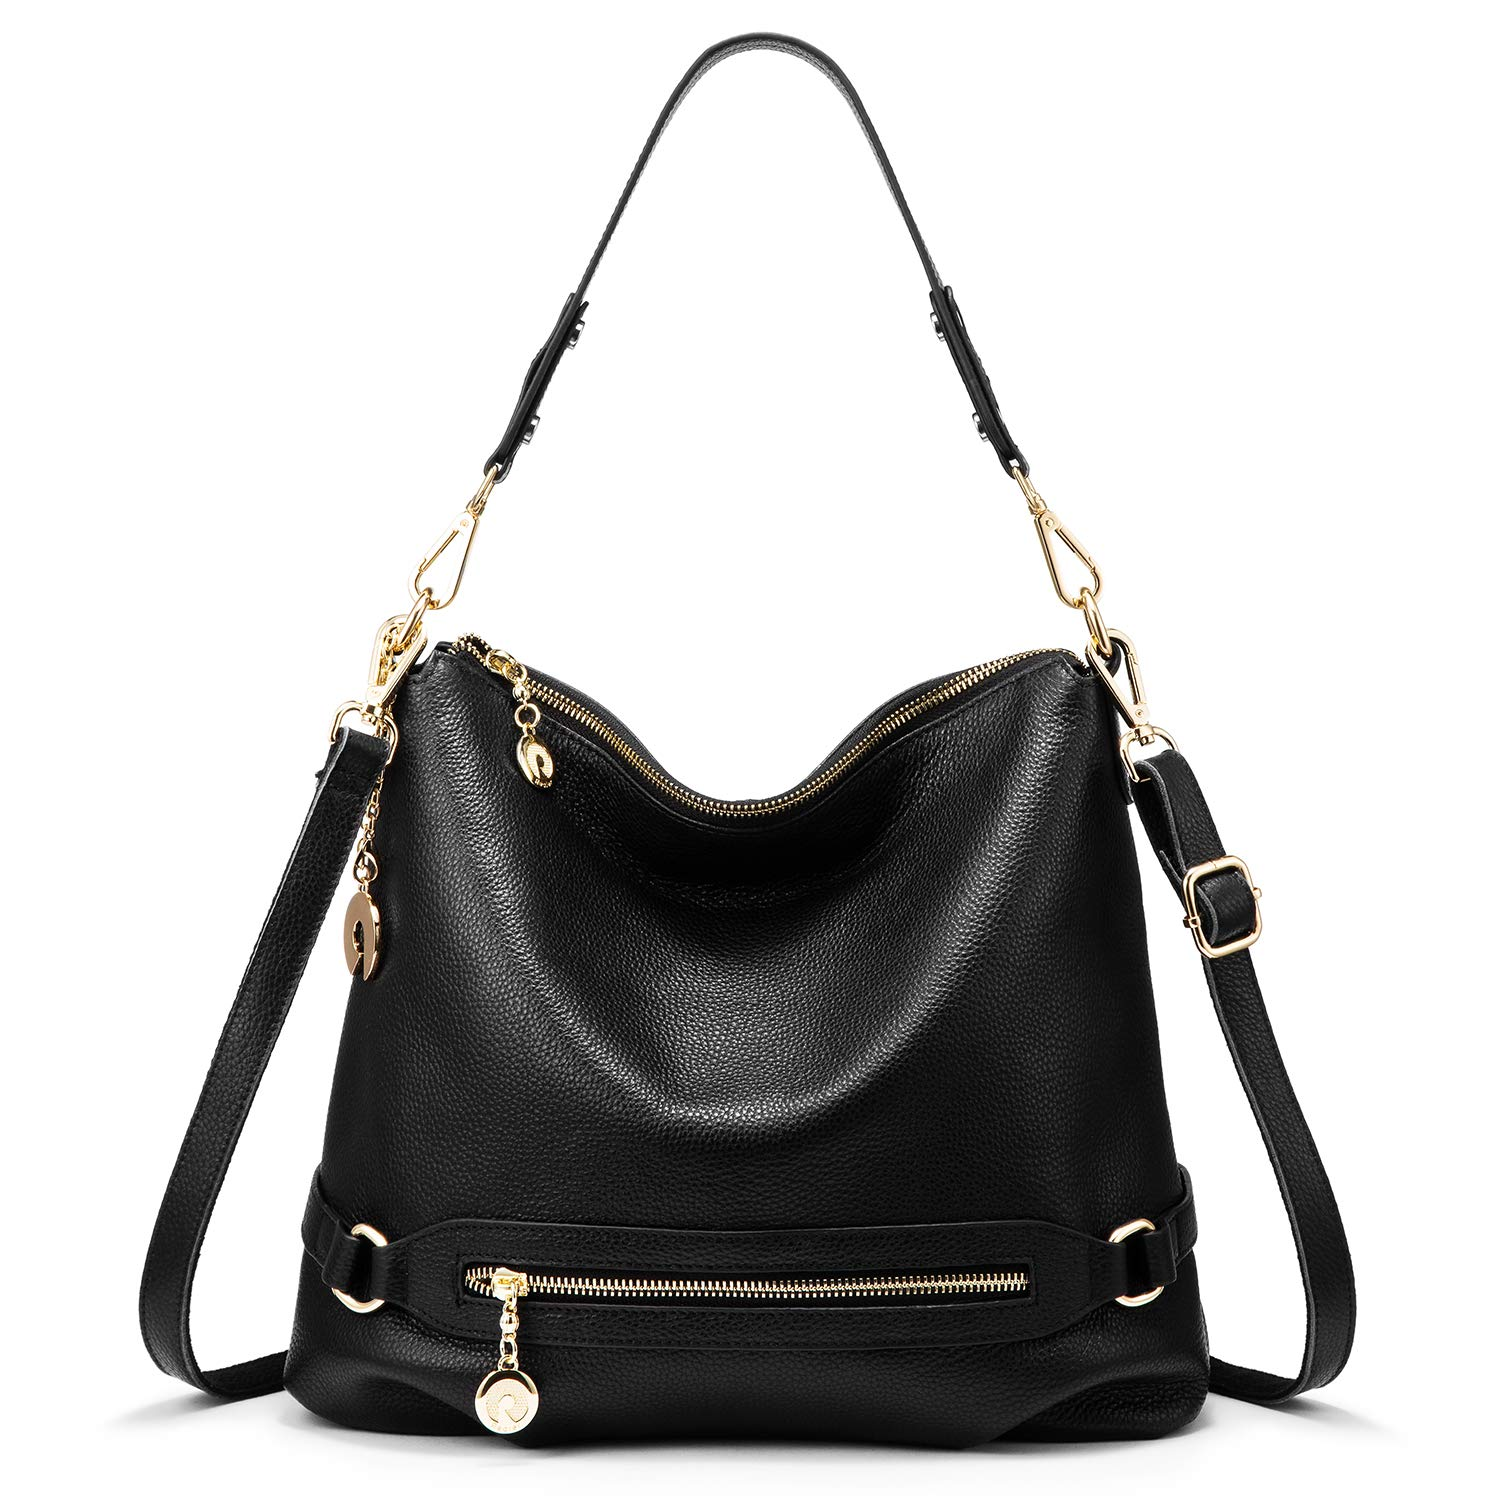 Genuine Leather Handbags for Women Large Designer Ladies Shoulder Bag  Bucket Style   Black    Handbags  Amazon.com b66c3fb24aaa4